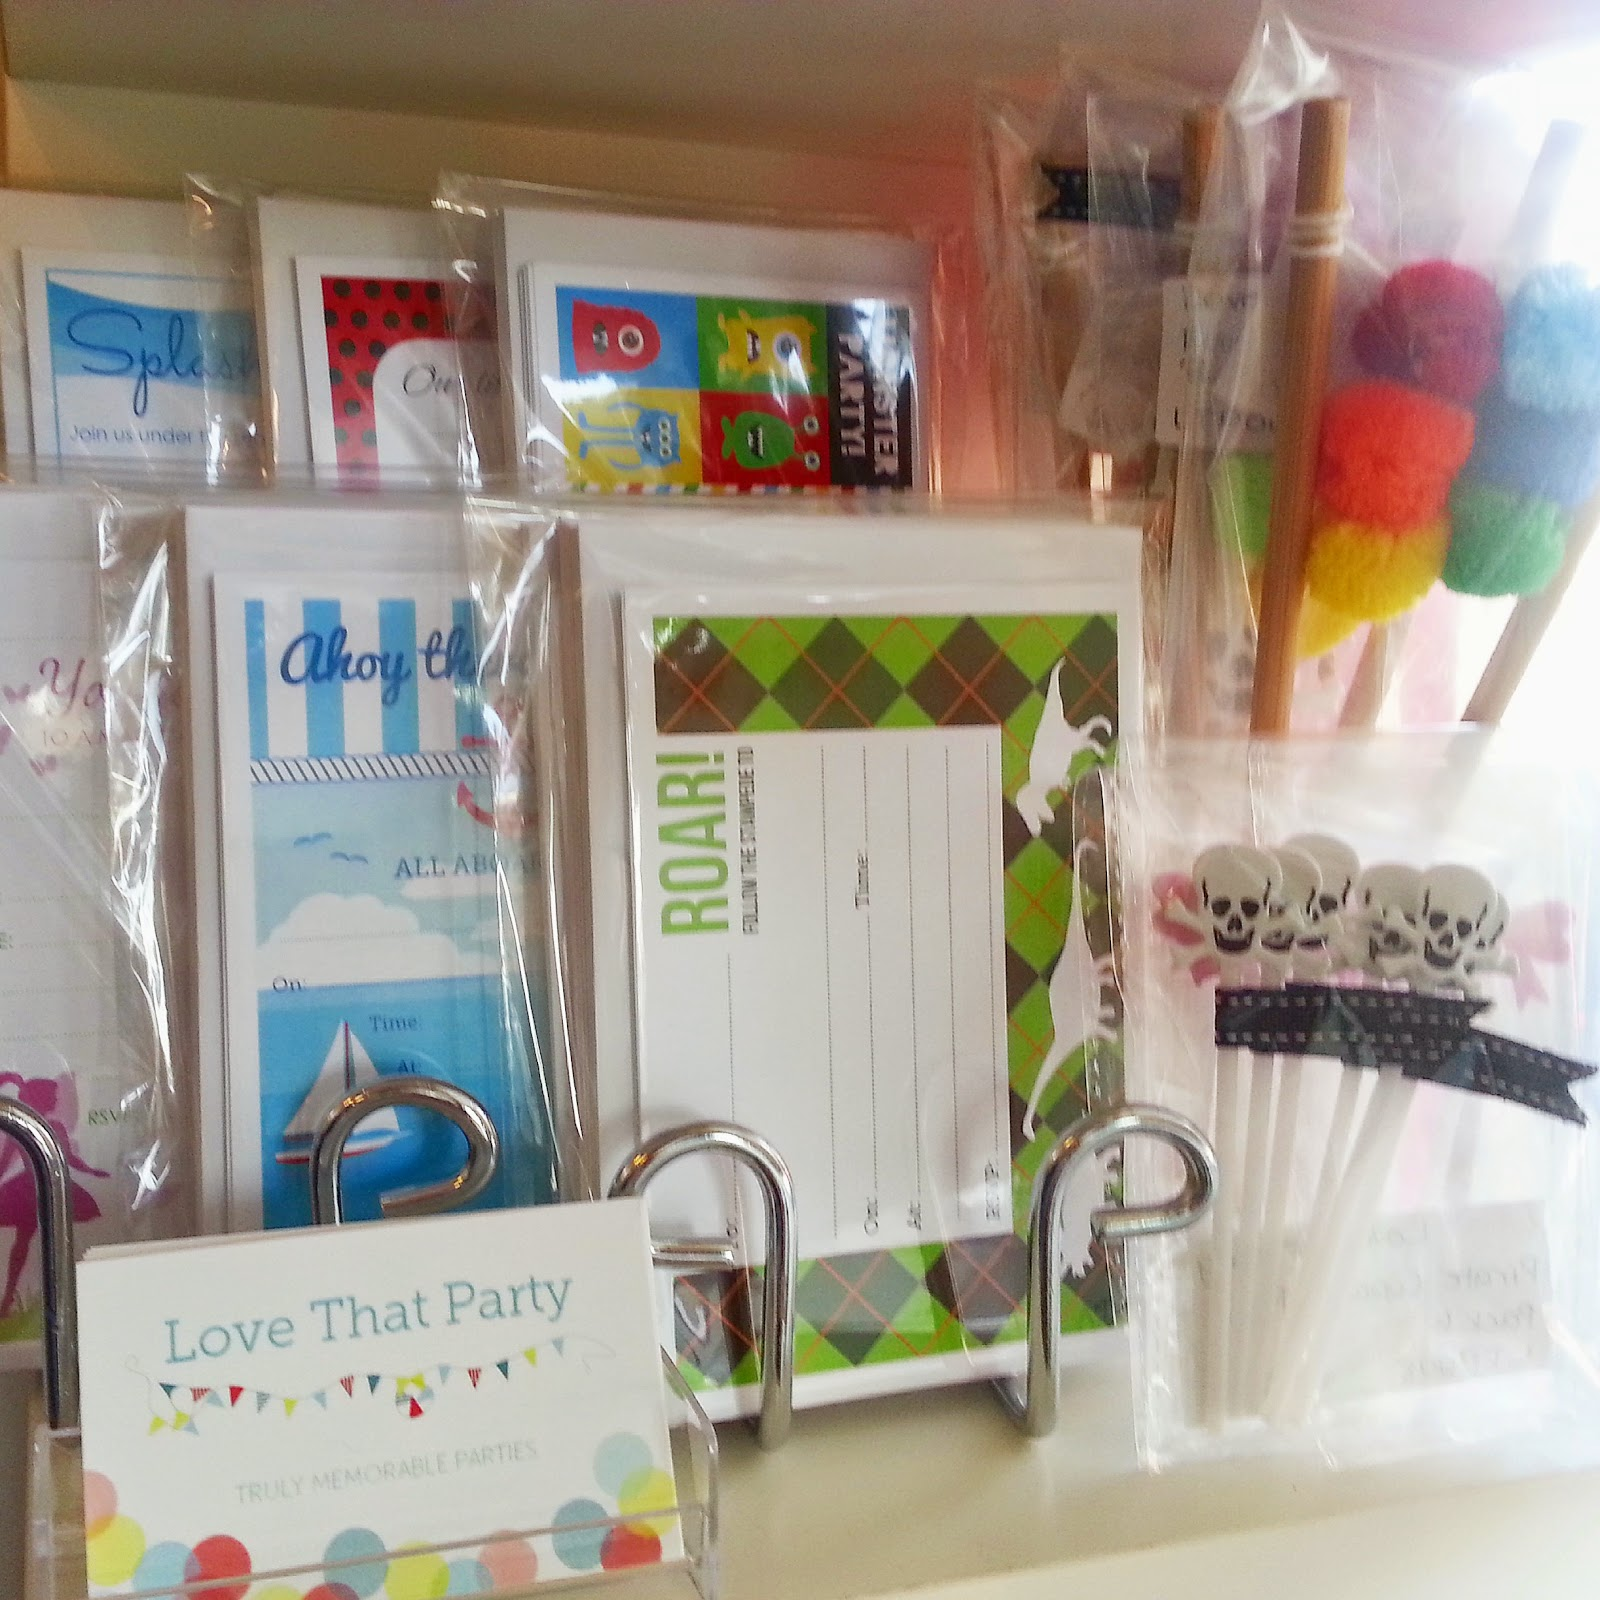 children's birthday party invitation packs in retail store